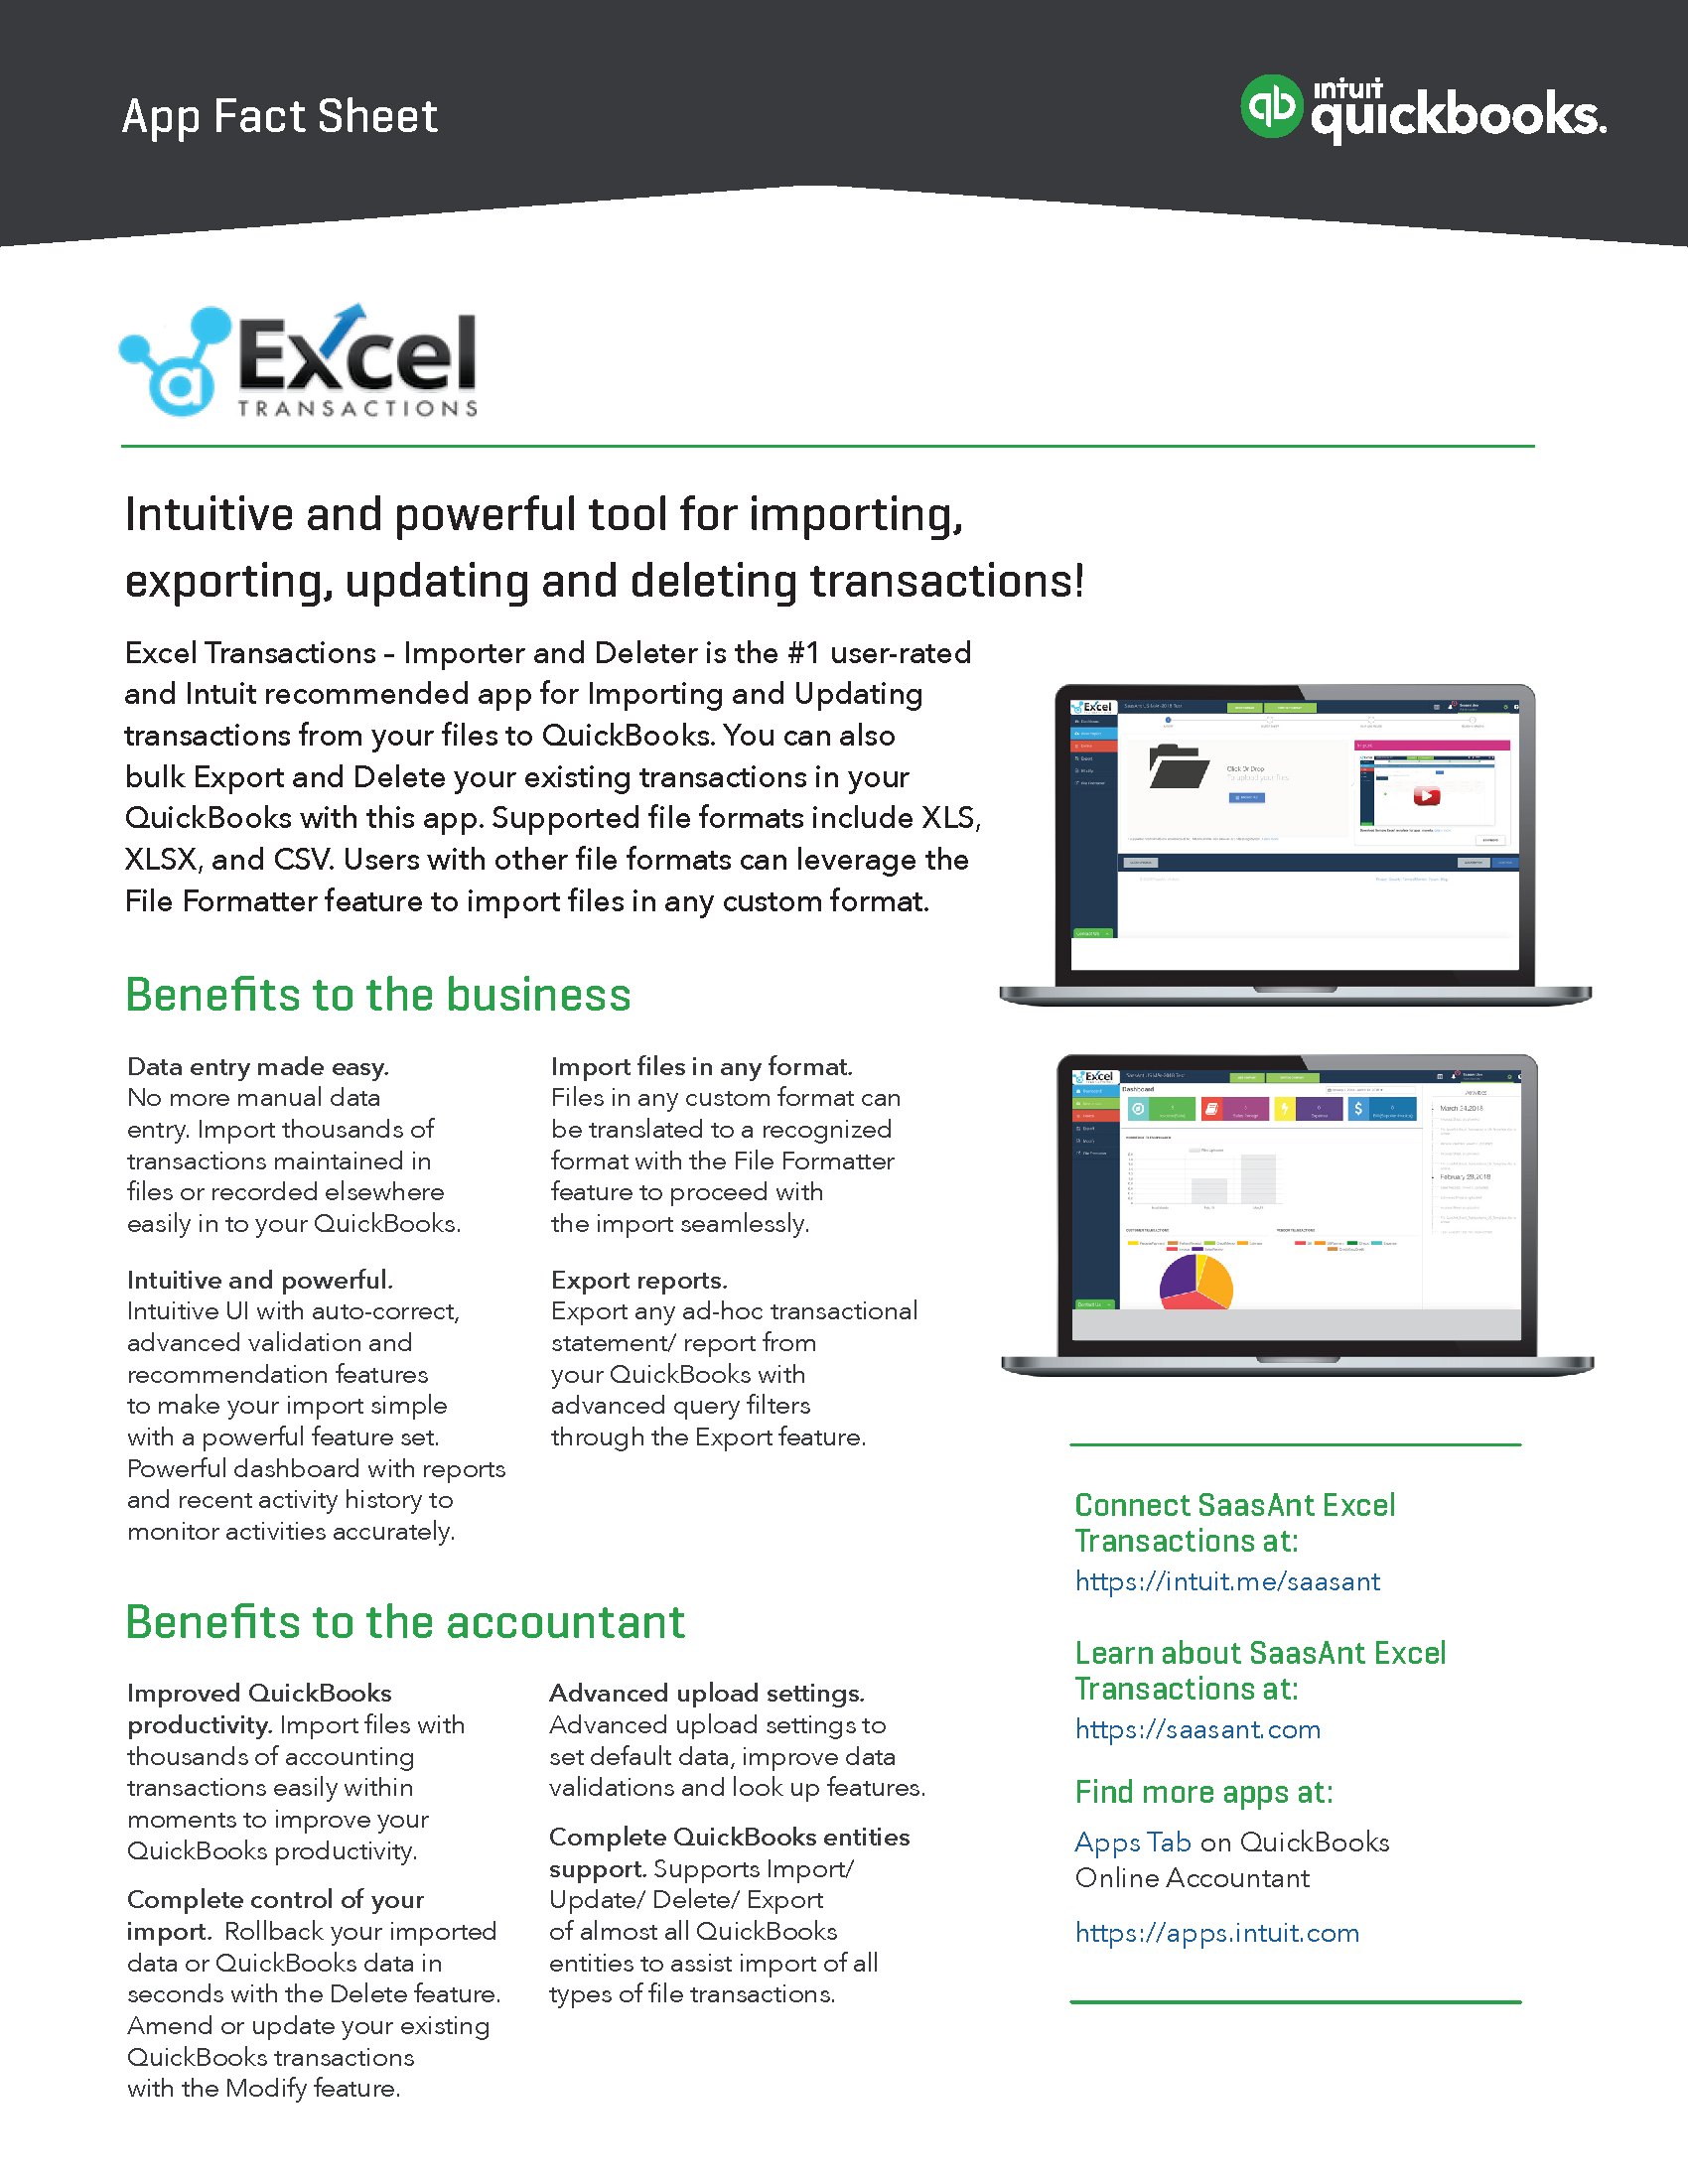 app fact sheet SaasAnt Excel Transactions